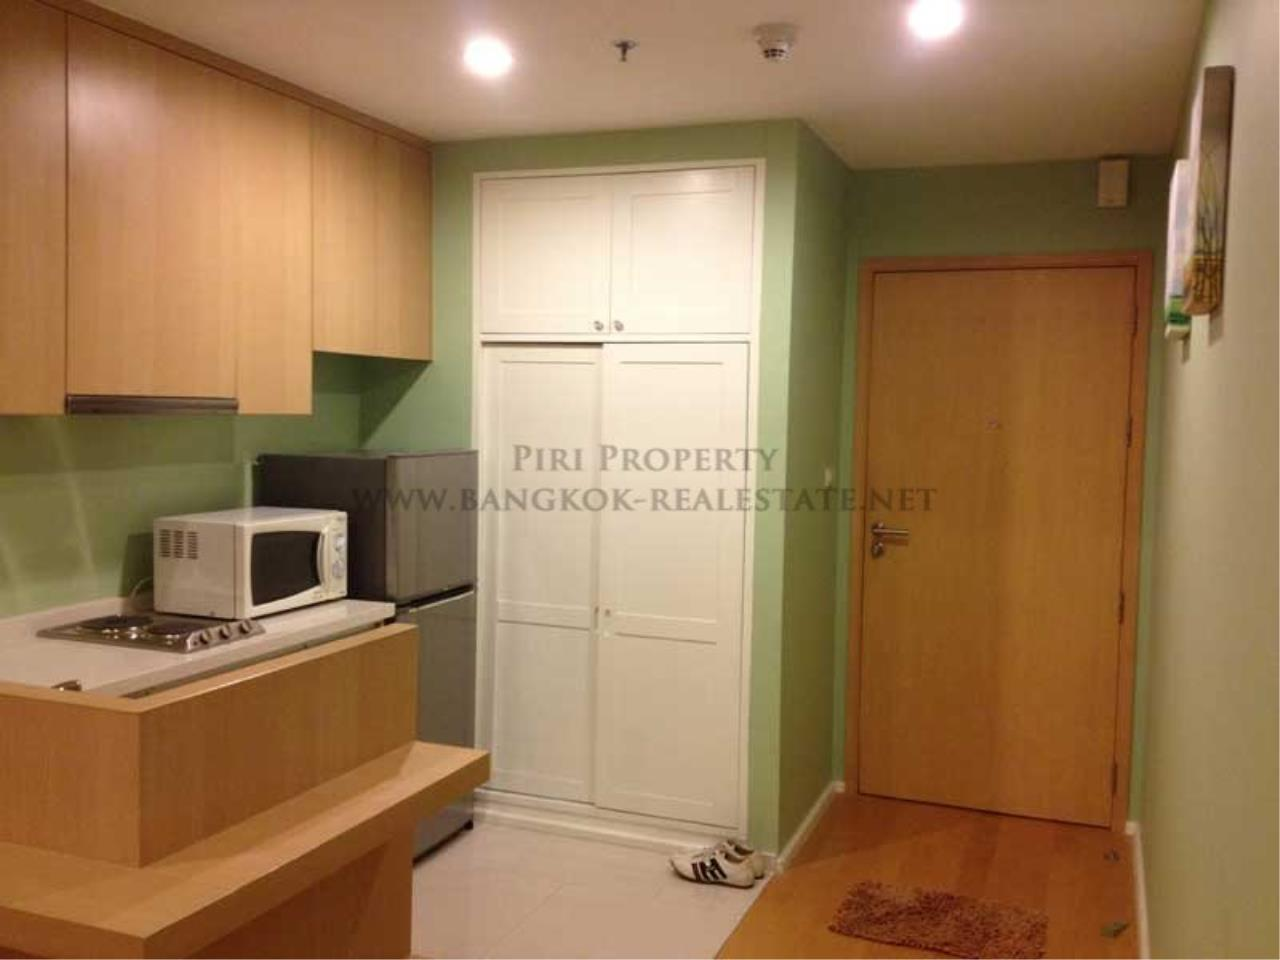 Piri Property Agency's 1 Bedroom in Villa Ratchatewi - Fully furnished on 25th Floor 2